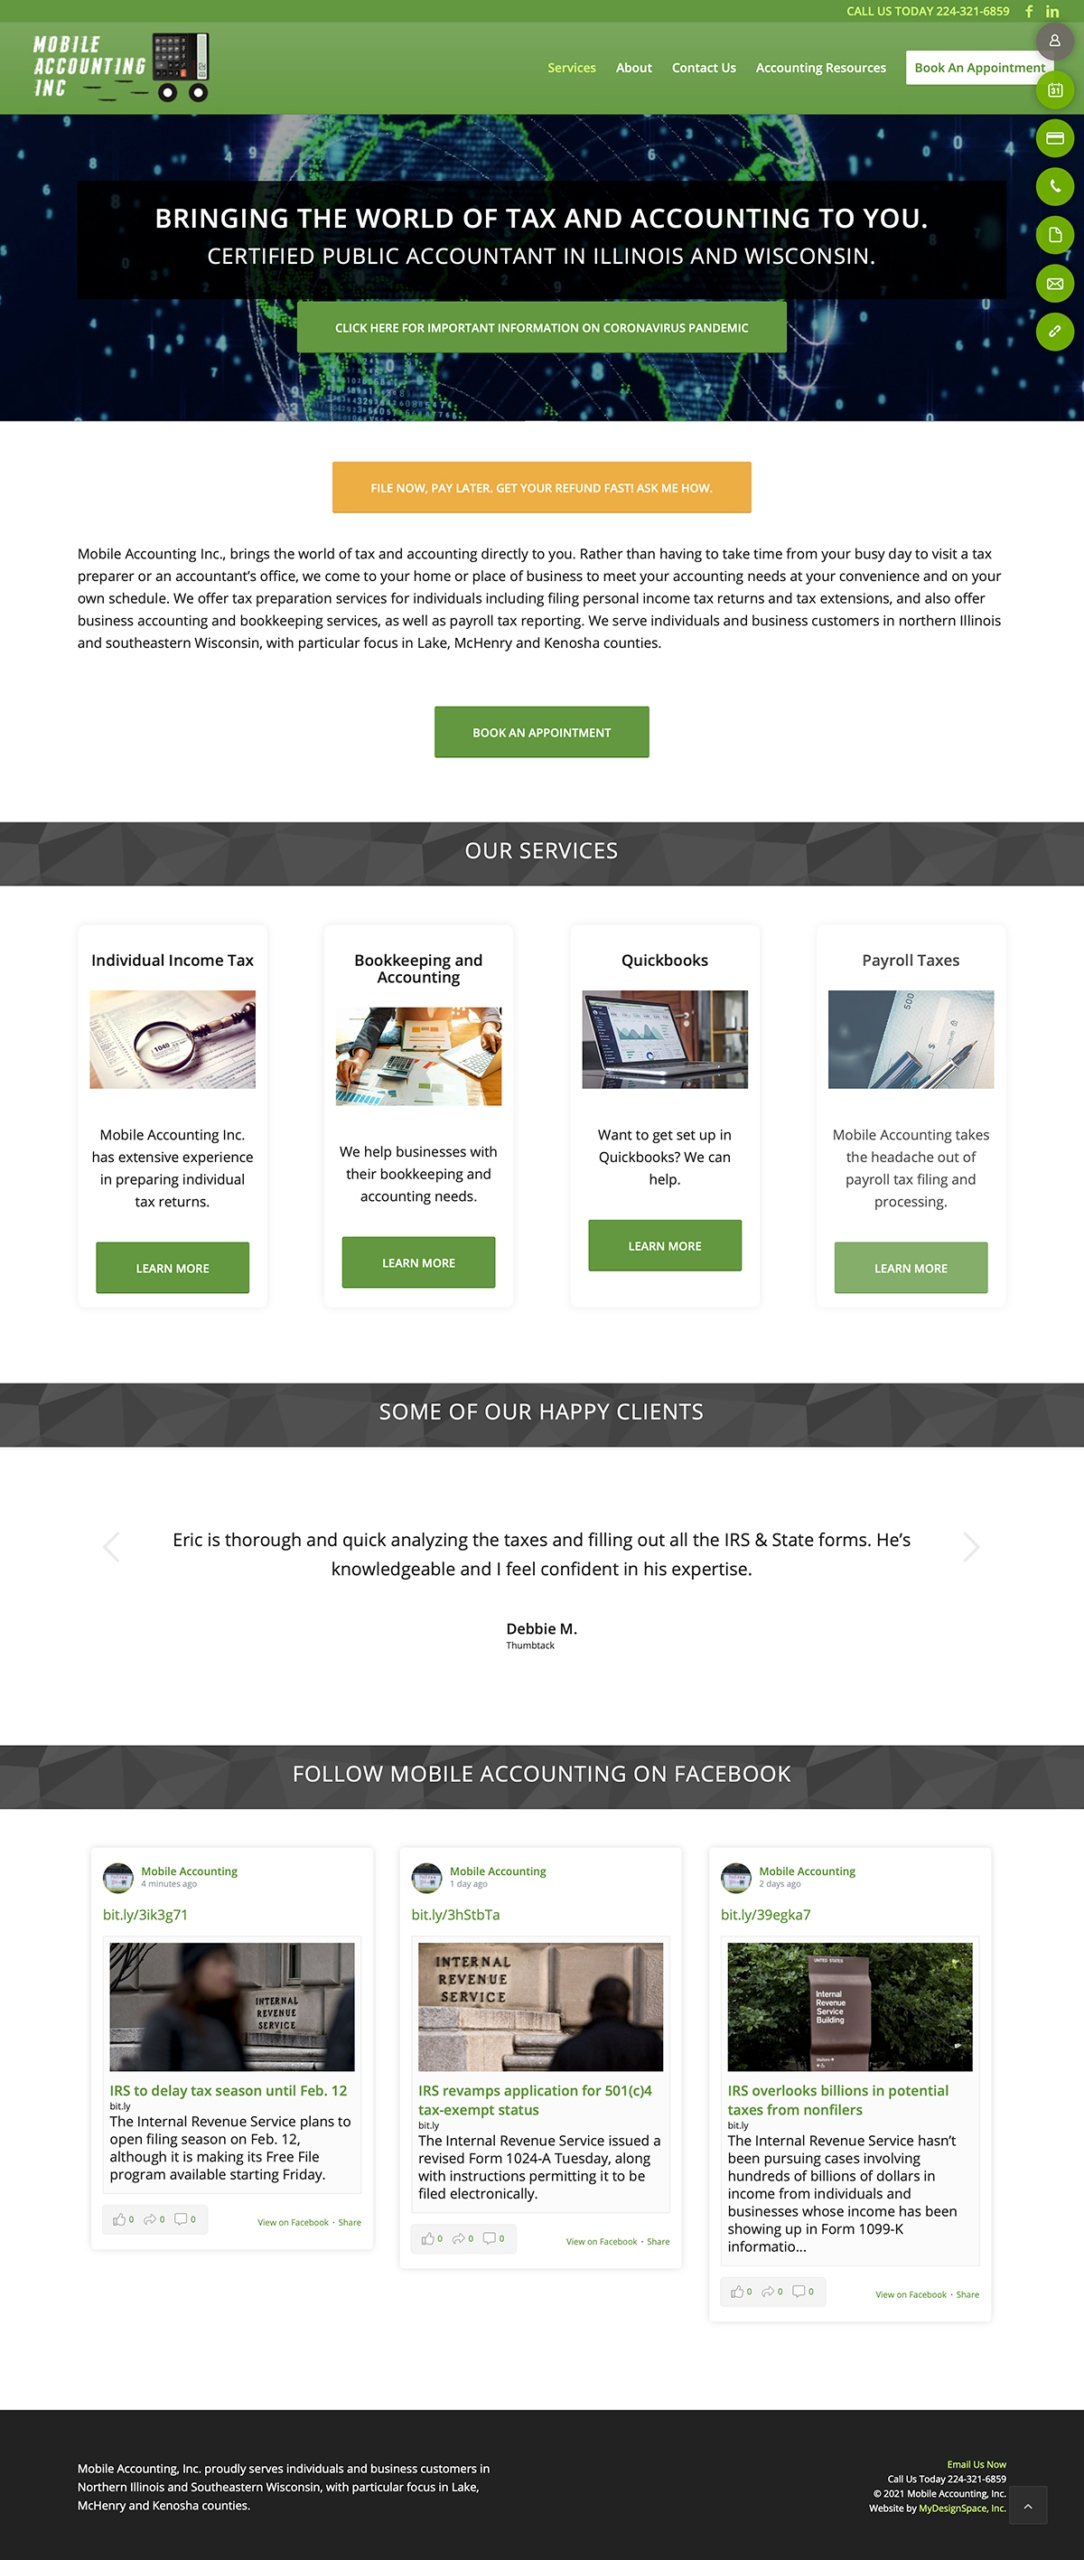 Mobile Accounting Home Page Layout